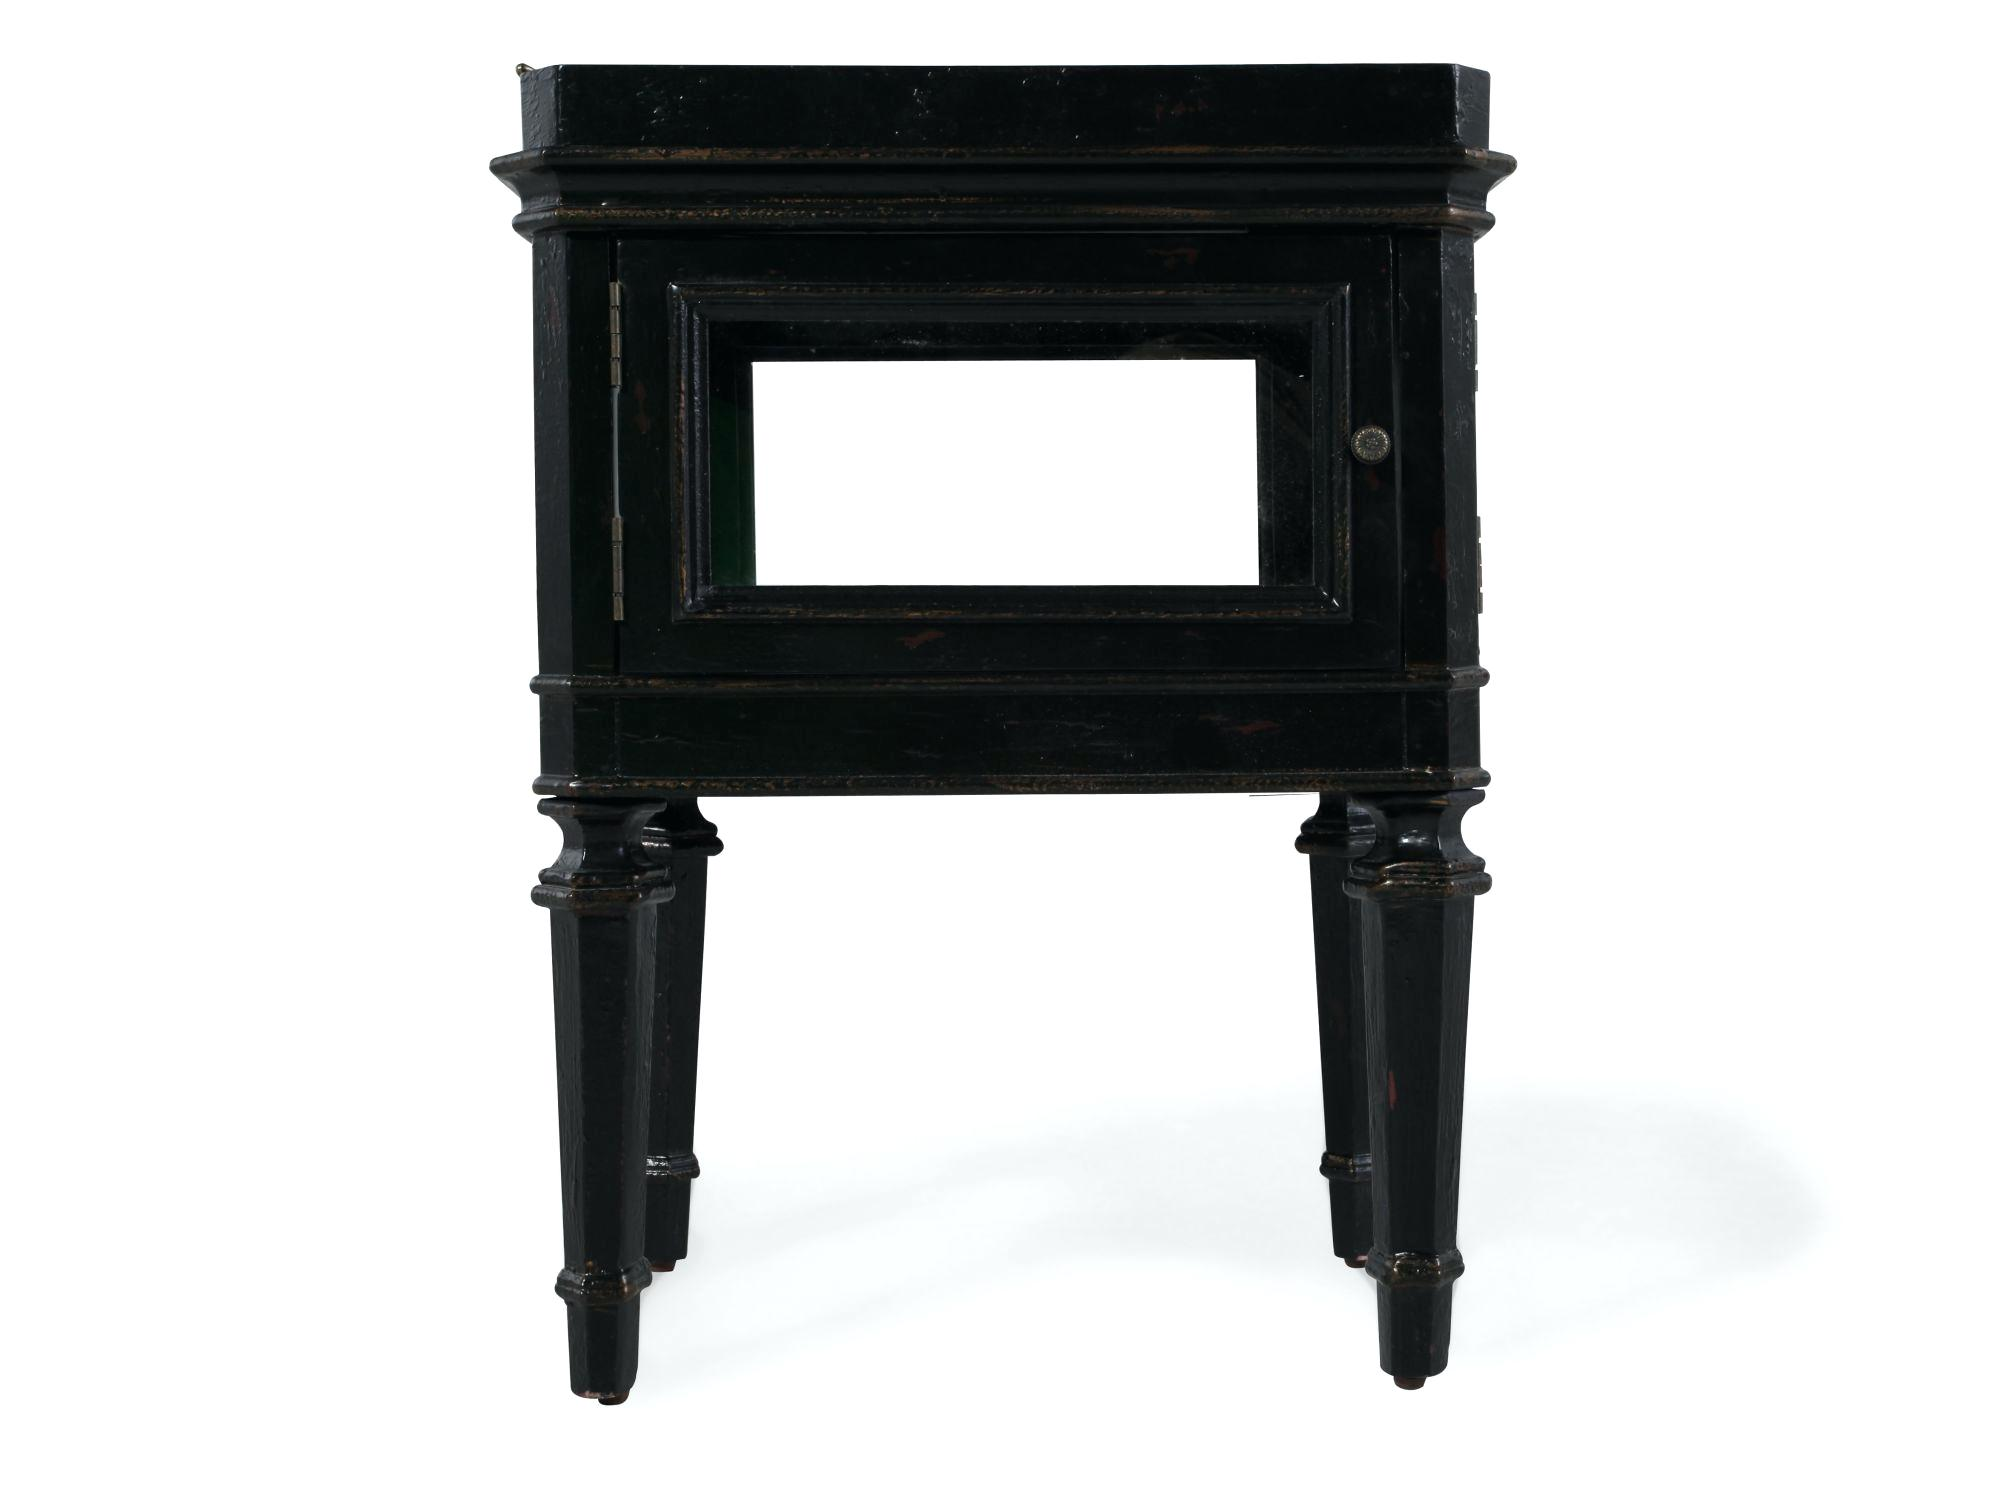 black accent table design for tables hexagonal legs traditional small tall side with cooler high end tiffany rattle elm rod iron country wood and mirrored bedside white drawer